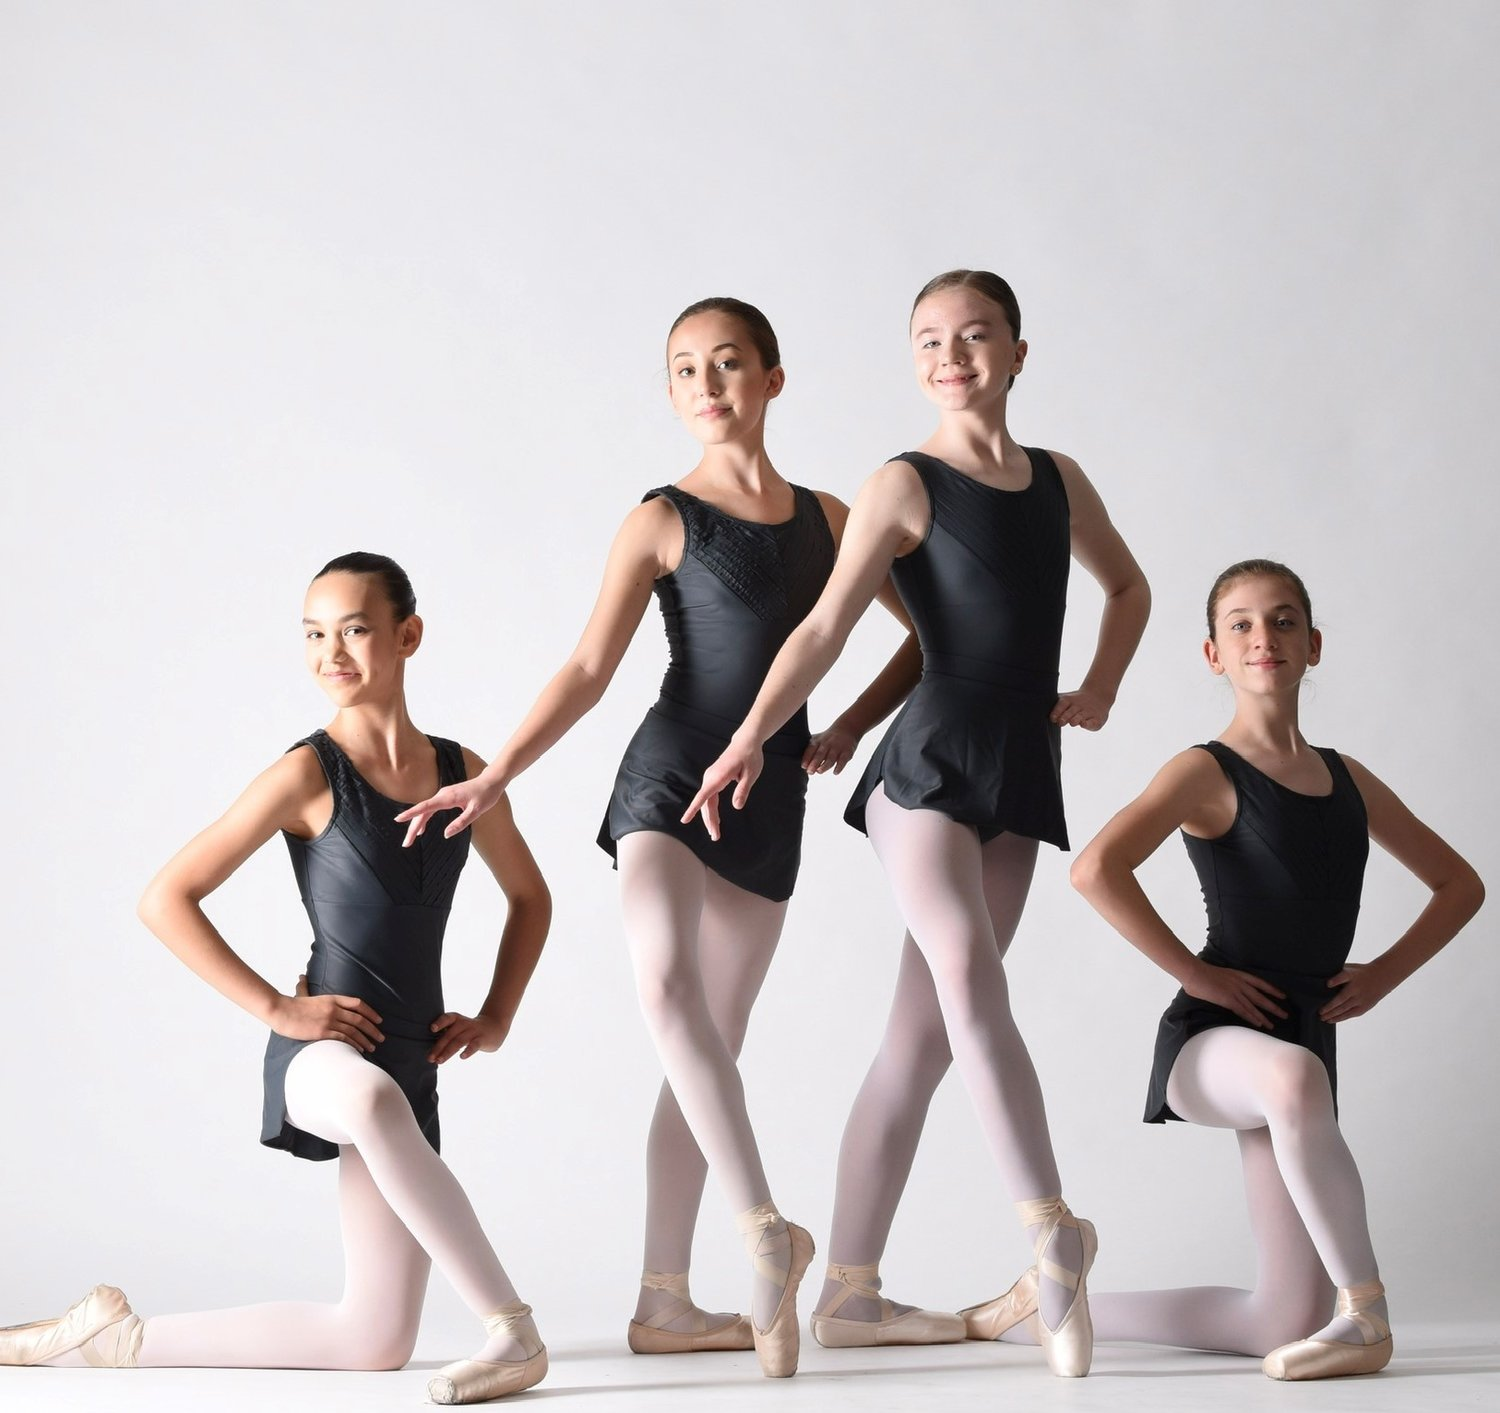 Several Ponte Vedra Ballet & Dance Company students will attend prestigious summer dance intensives. Pictured from left to right are Emily Shende (Bolshoi), Alexandra Willis (Miami City Ballet), Margaret Ivantsov (Joffrey Ballet) and Avery Mangan (The Rock School).